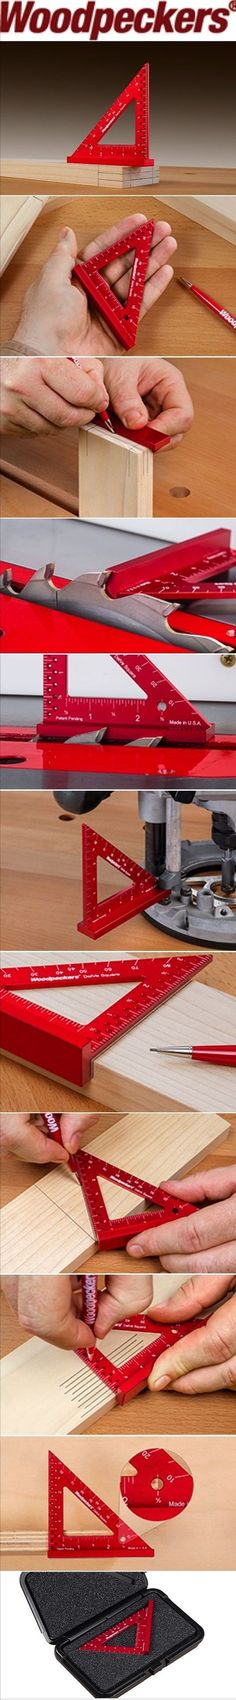 "Woodpeckers - Woodworking Squares  :: Many practical uses packed into a square not even 4"" long. Joinery Layout Wiz Gauging Tool Measureless Marking Machine Set Up Measurement Tool Angle Marking And More"